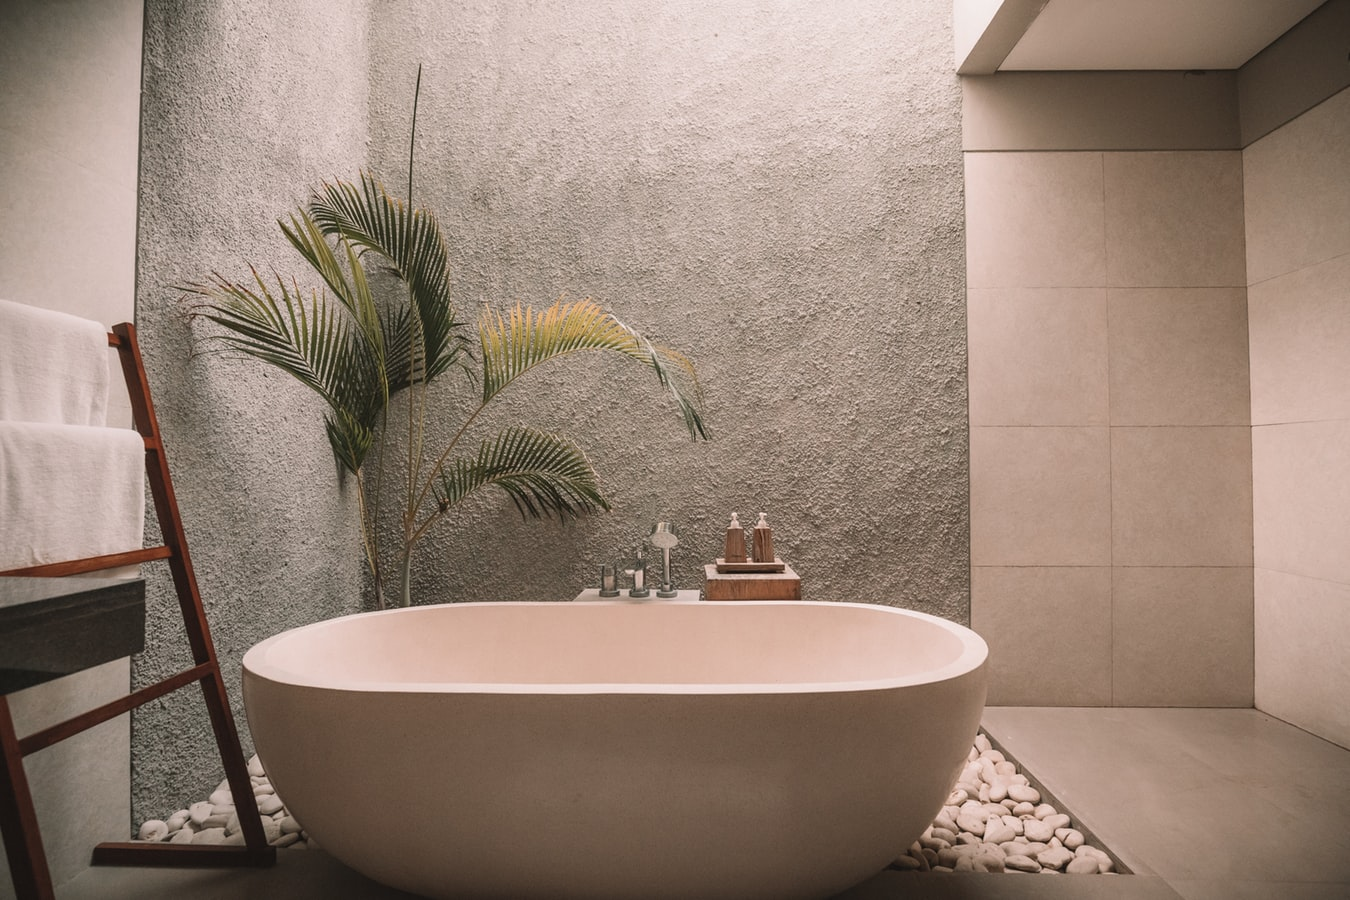 A stone bathtub set on pebbles in an open-air terrace with walls made of plaster and stone tiles.